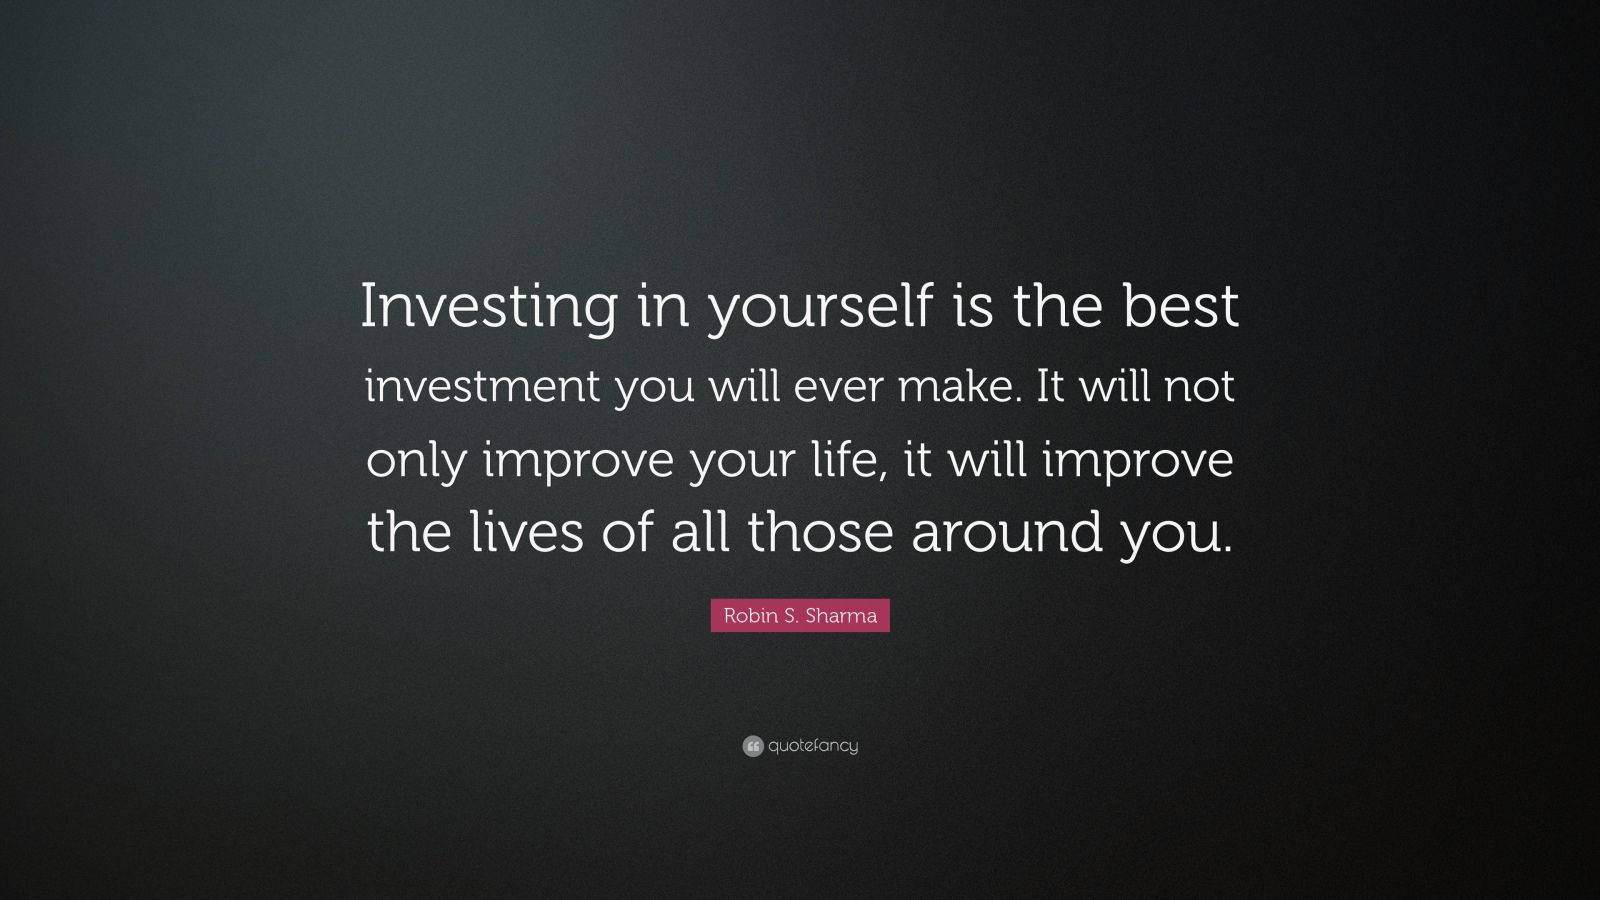 Robin S. Sharma Quote: Investing in yourself is the best investment ...